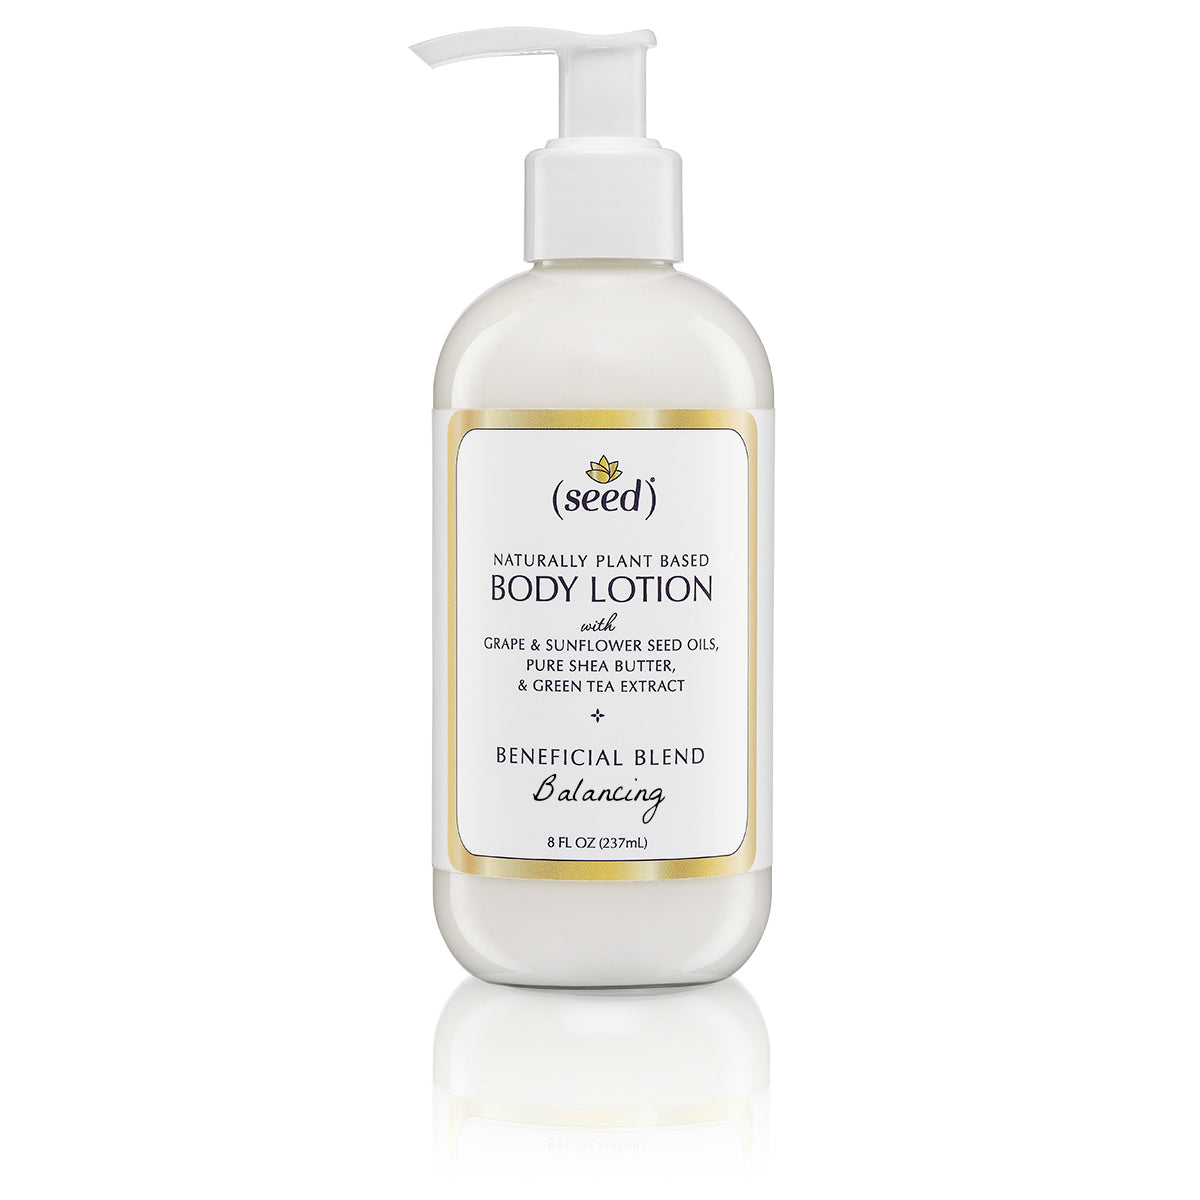 Seed Balancing Blend Body Lotion 8 oz with essential oils of palmarosa, lemon, and coriander